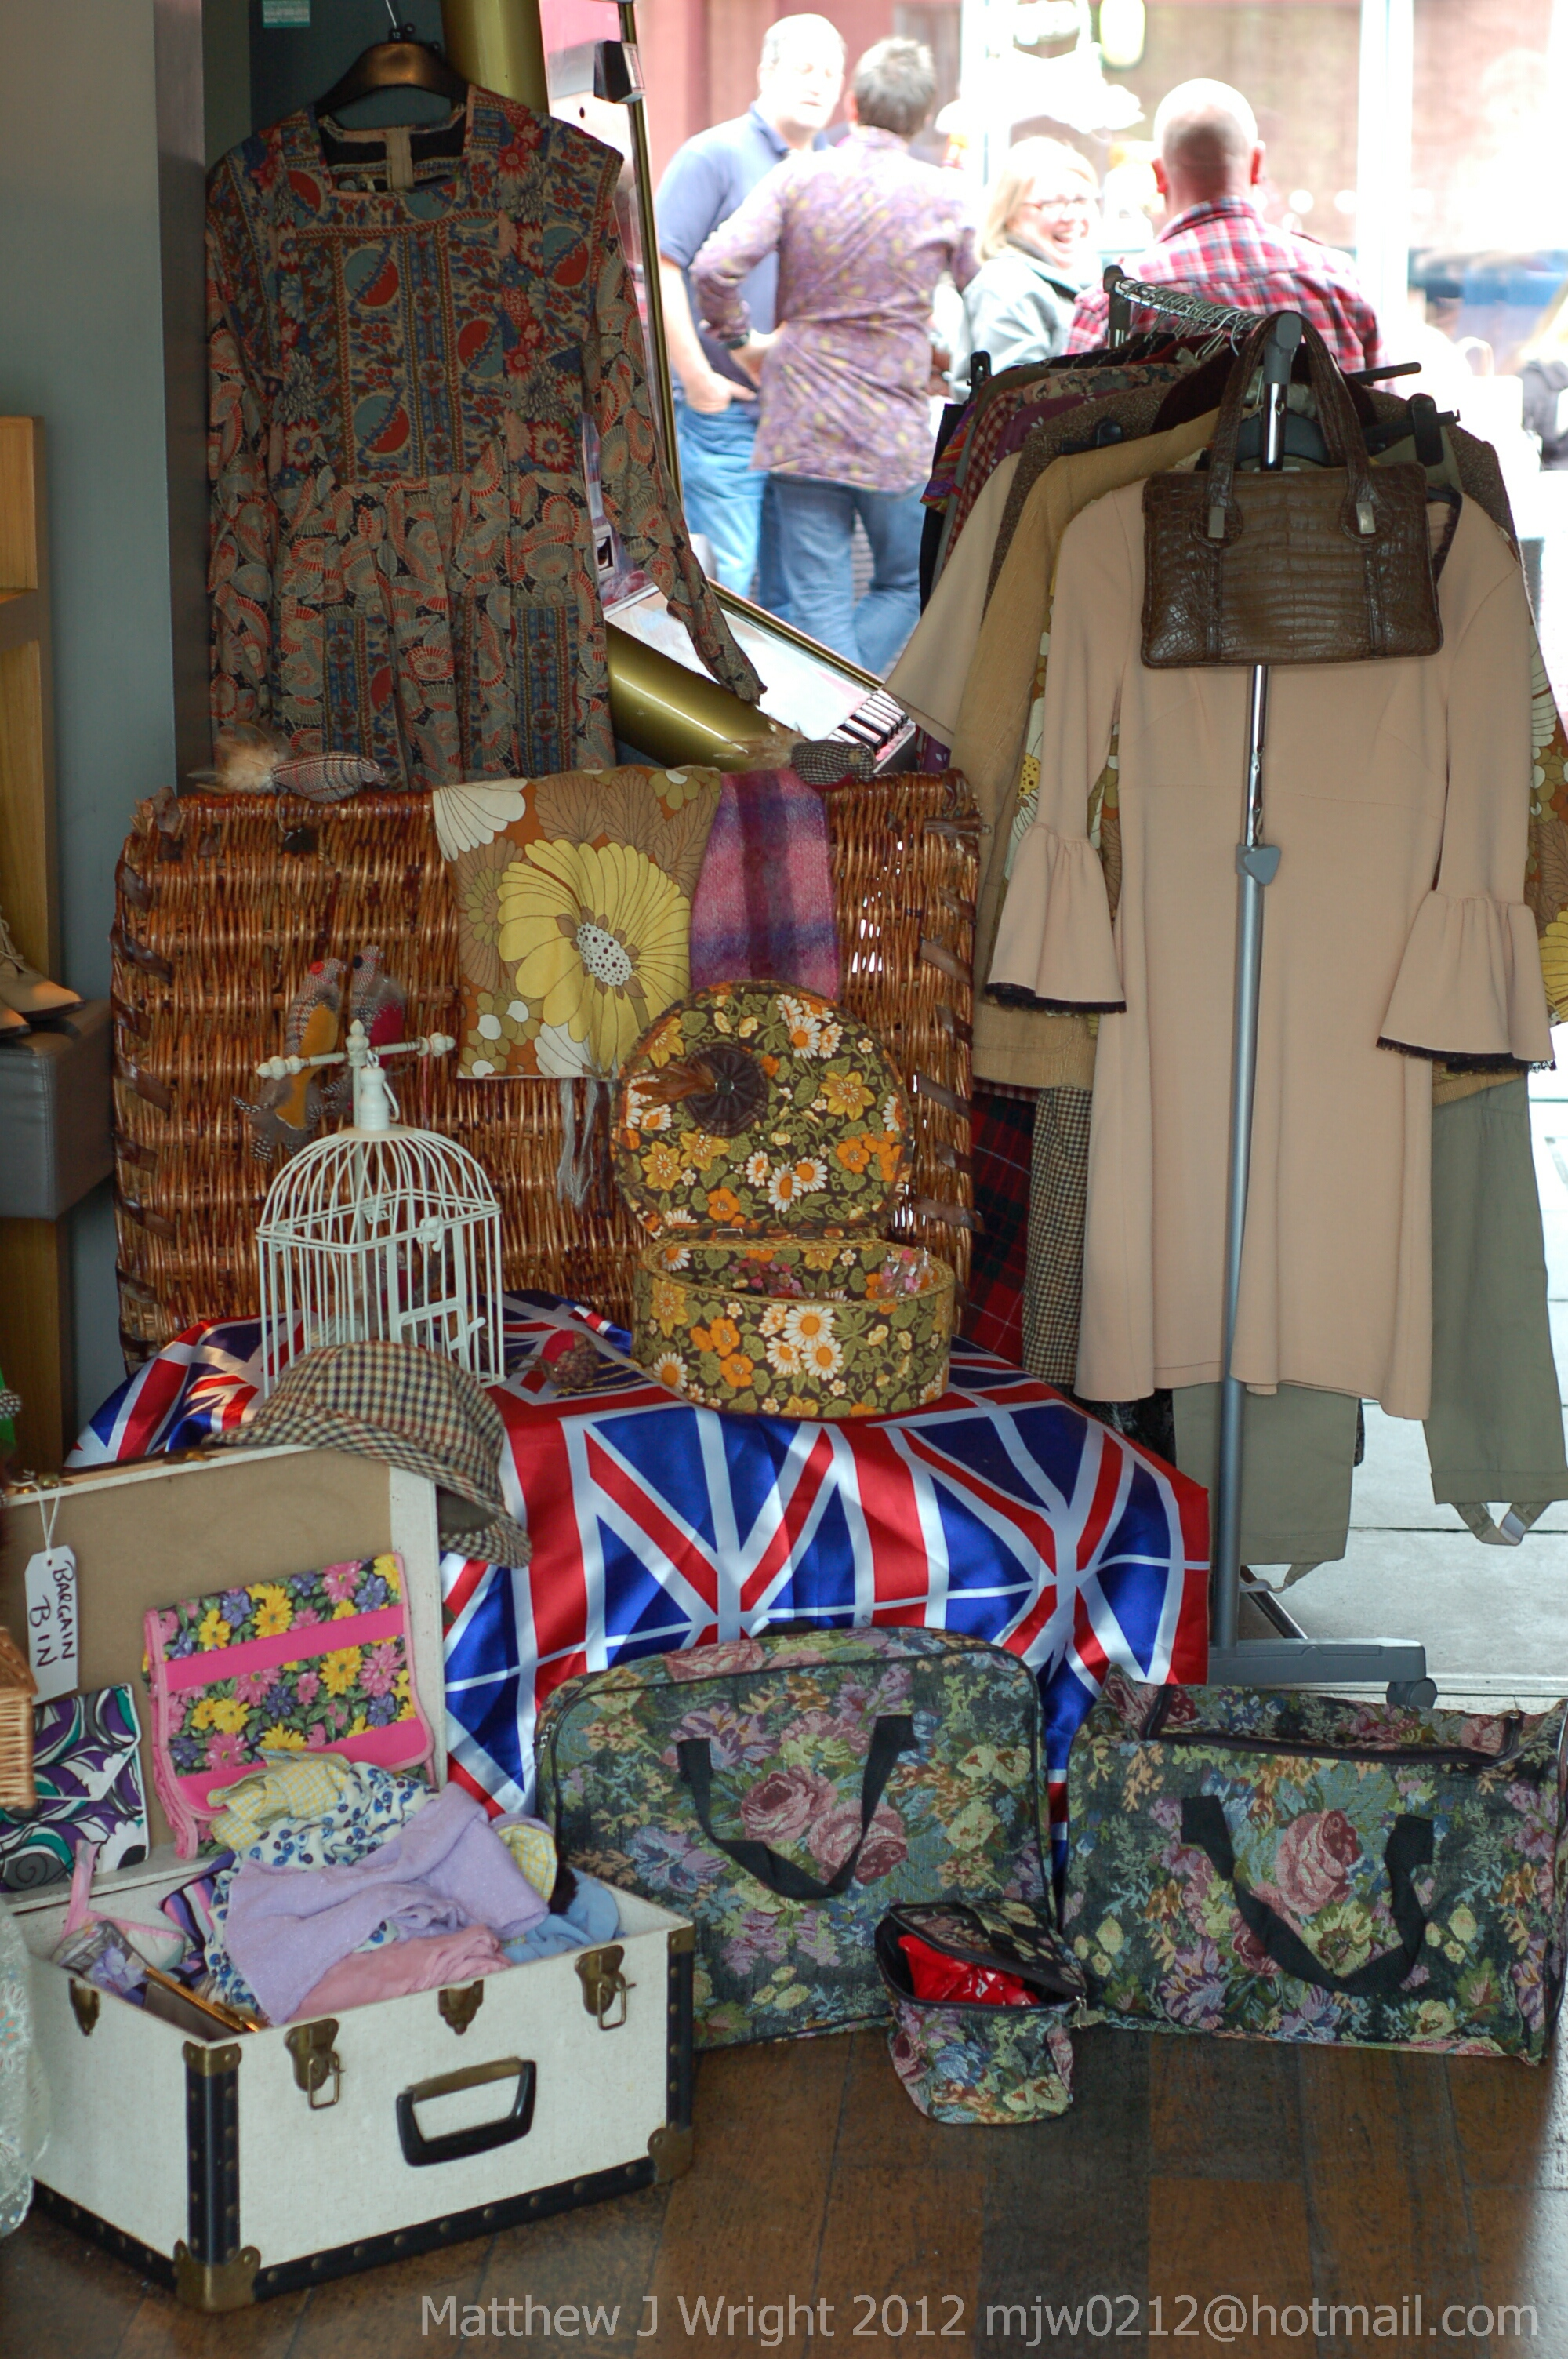 Flossies Vintage Clothing and Craft Fayre at The Forum Bar Ormskirk May 2012